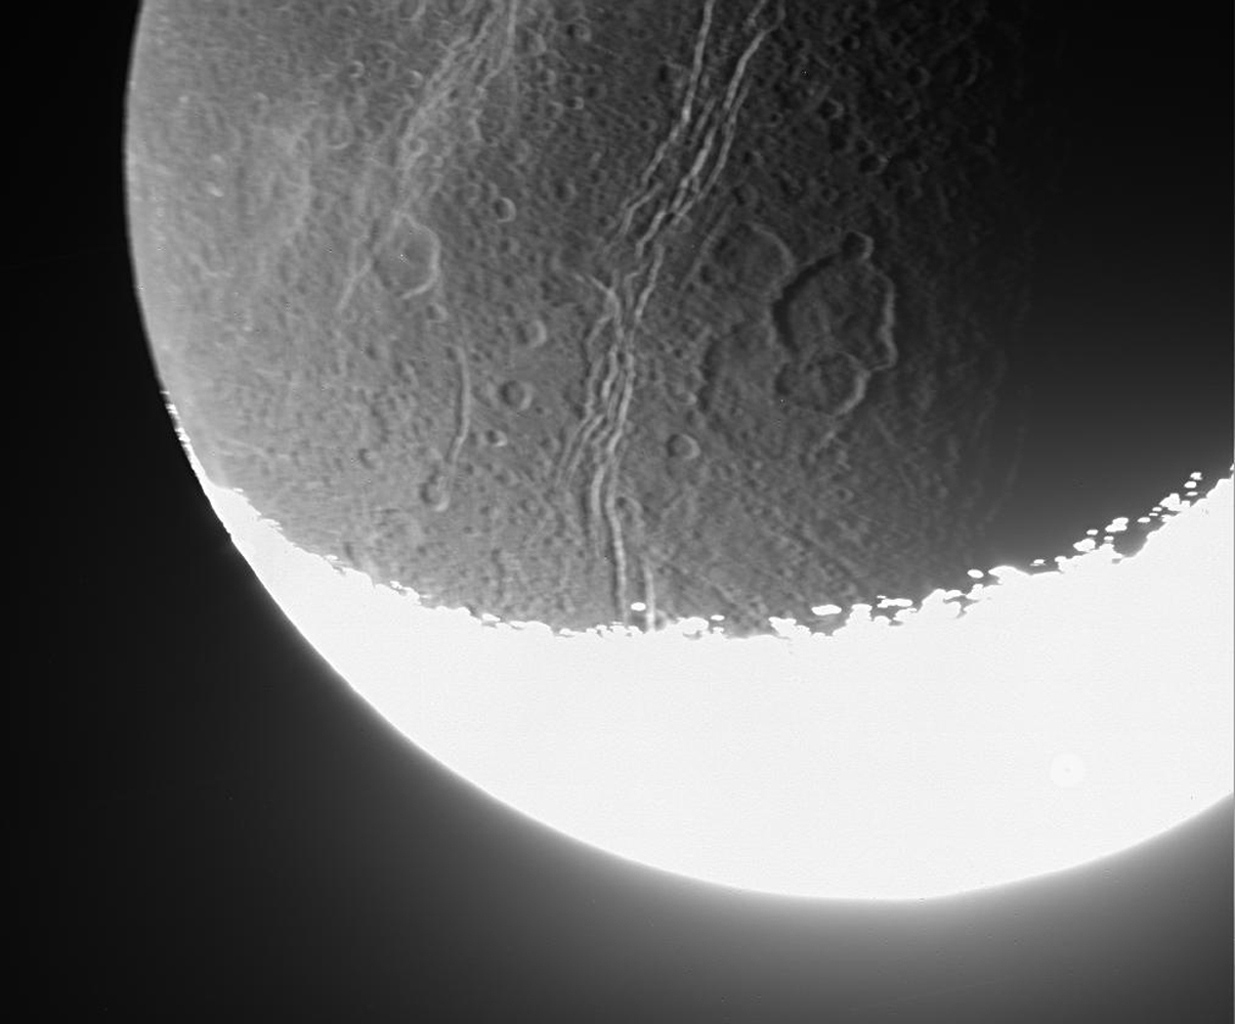 NASA's Cassini spacecraft whizzed past Dione on Aug. 16, 2006, capturing this slightly motion-blurred view of the moon's fractured and broken landscape in reflected light from Saturn.